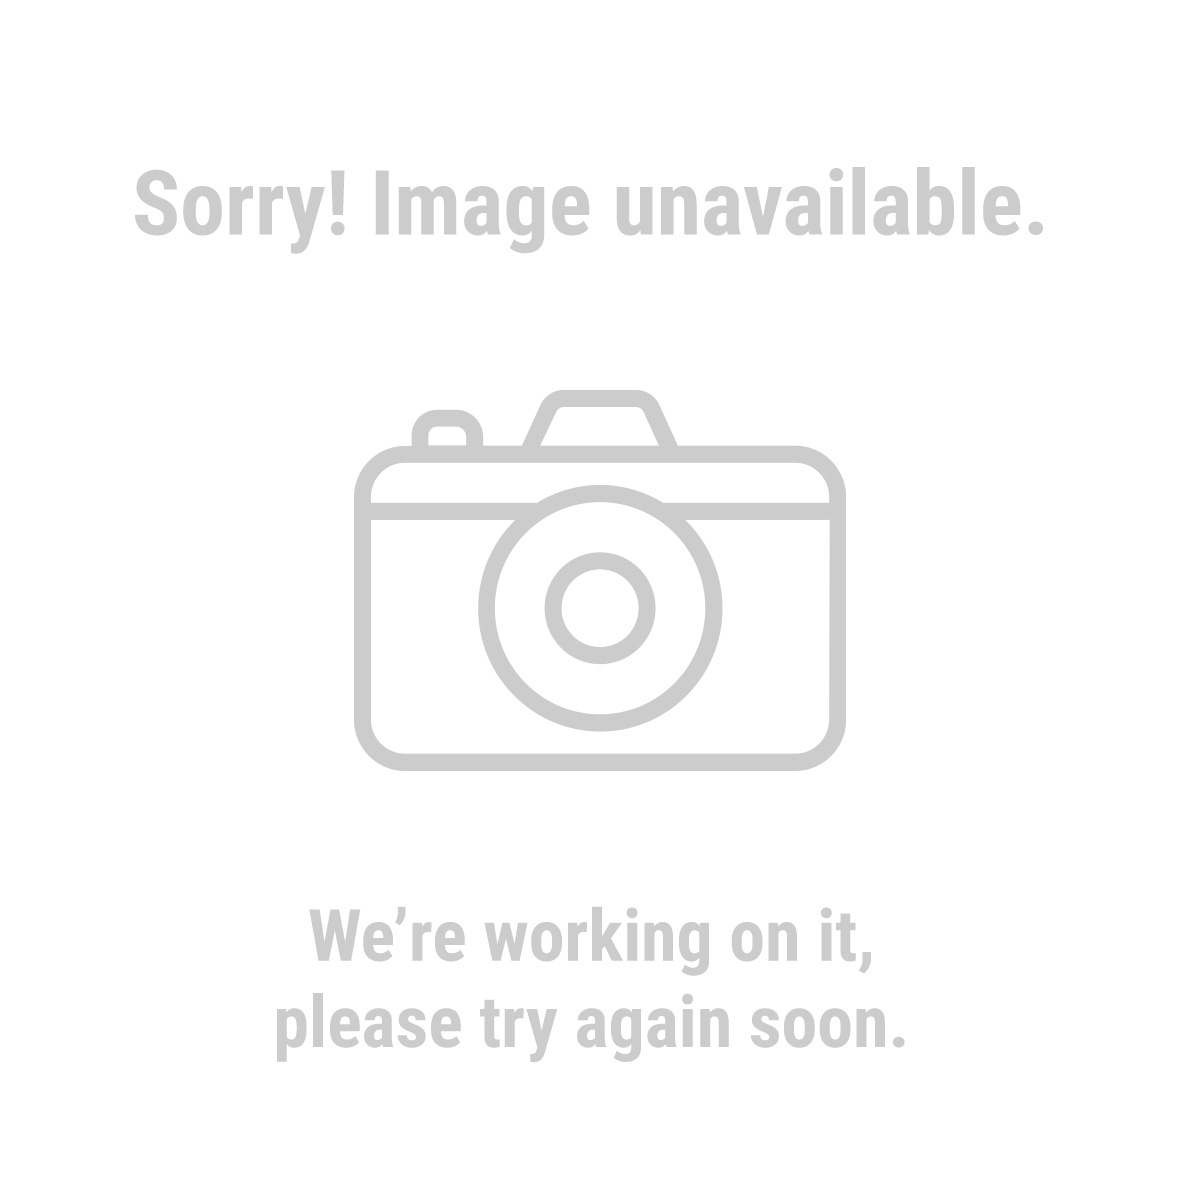 HFT® 60451 11 ft. 4 in. x 15 ft. 6 in. Reflective Heavy Duty Silver Tarp